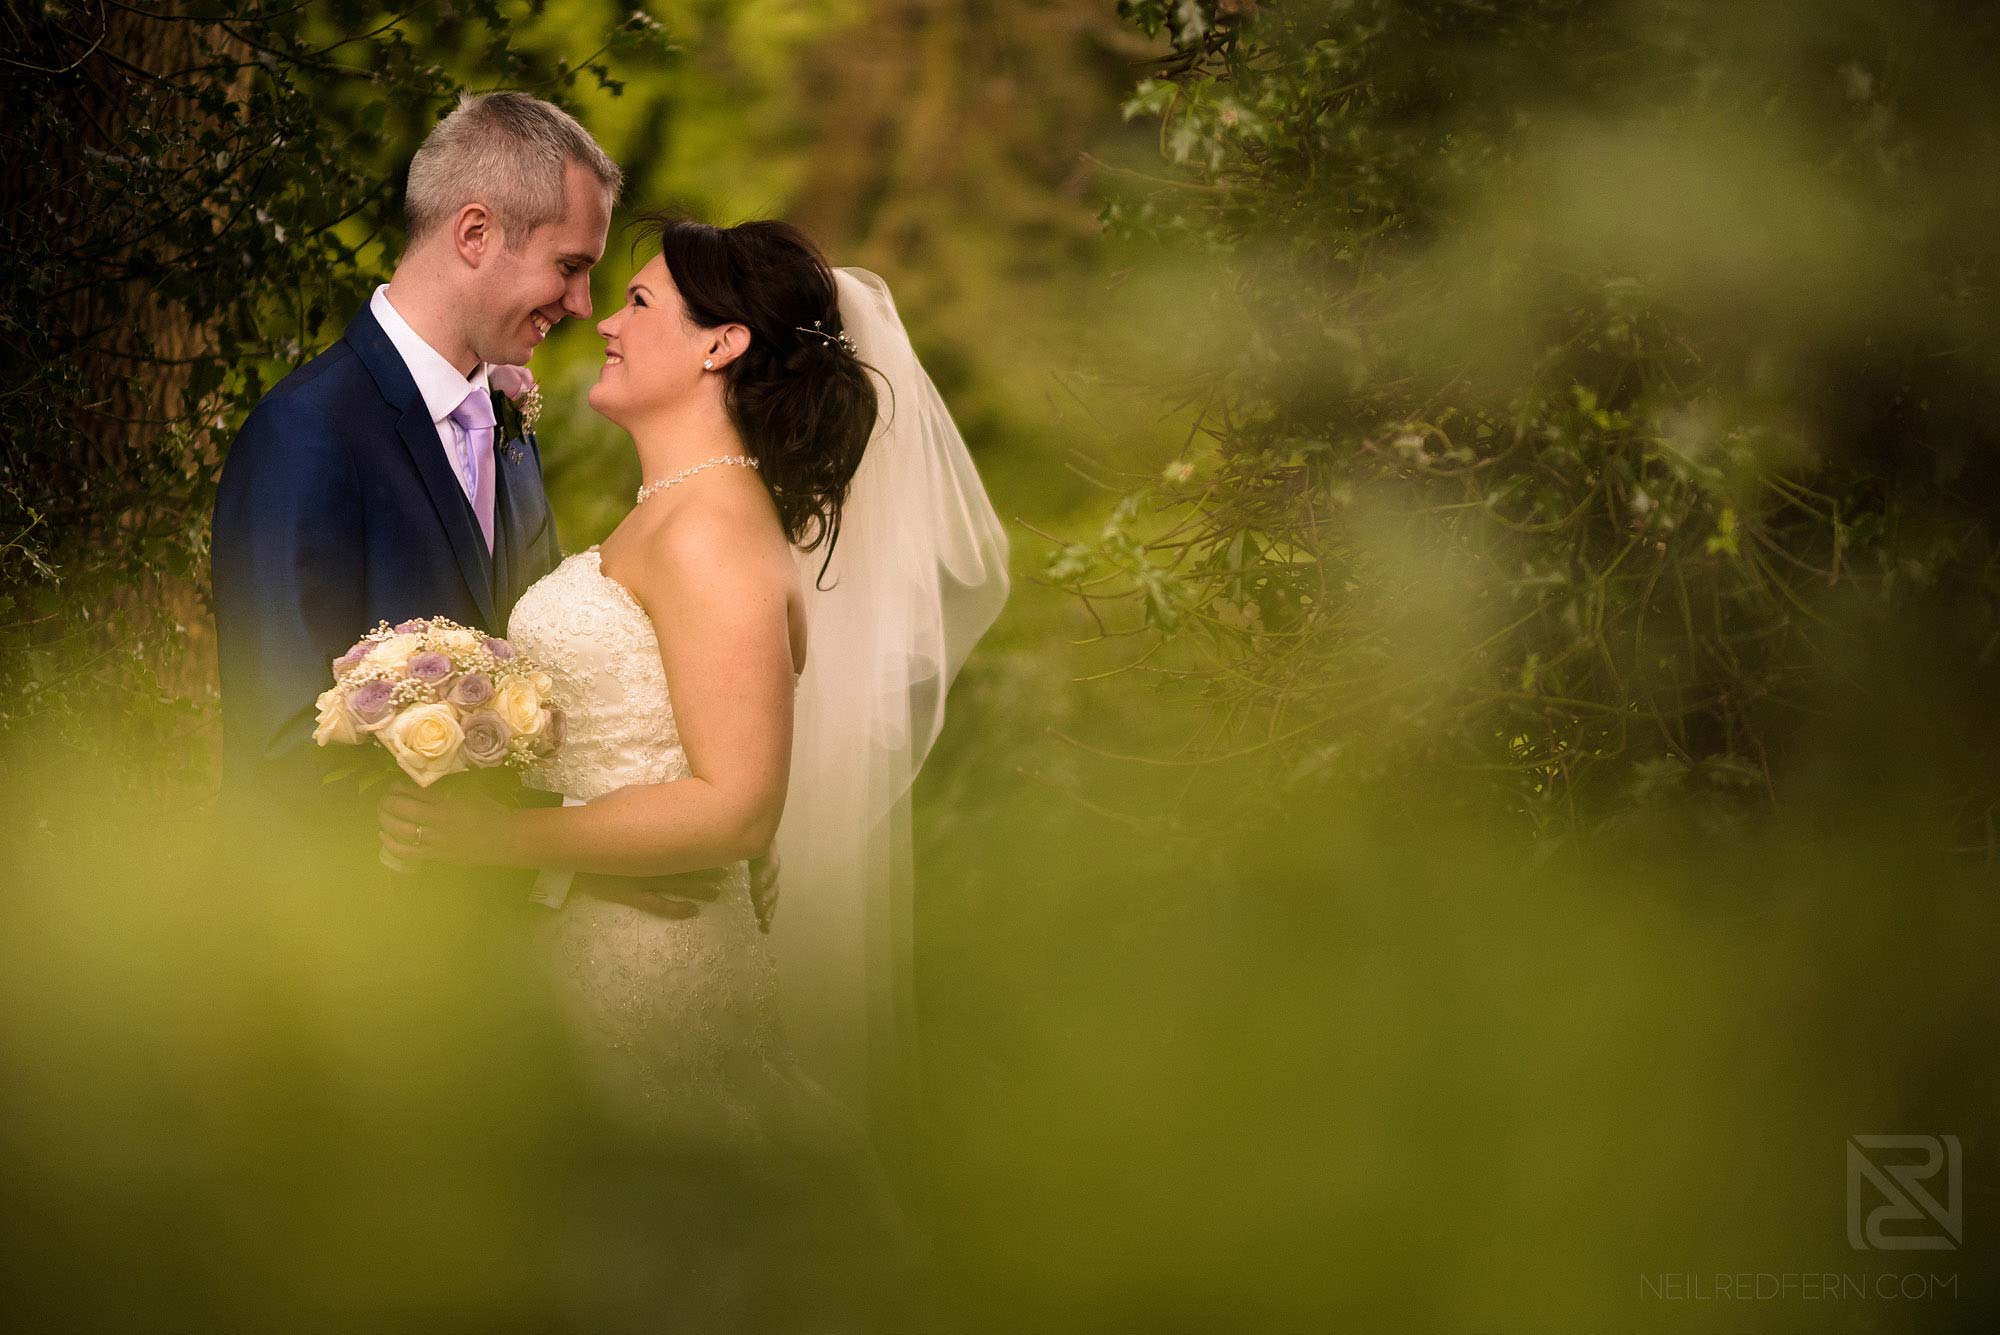 romantic portrait photograph of bride and groom at Rowton Hall